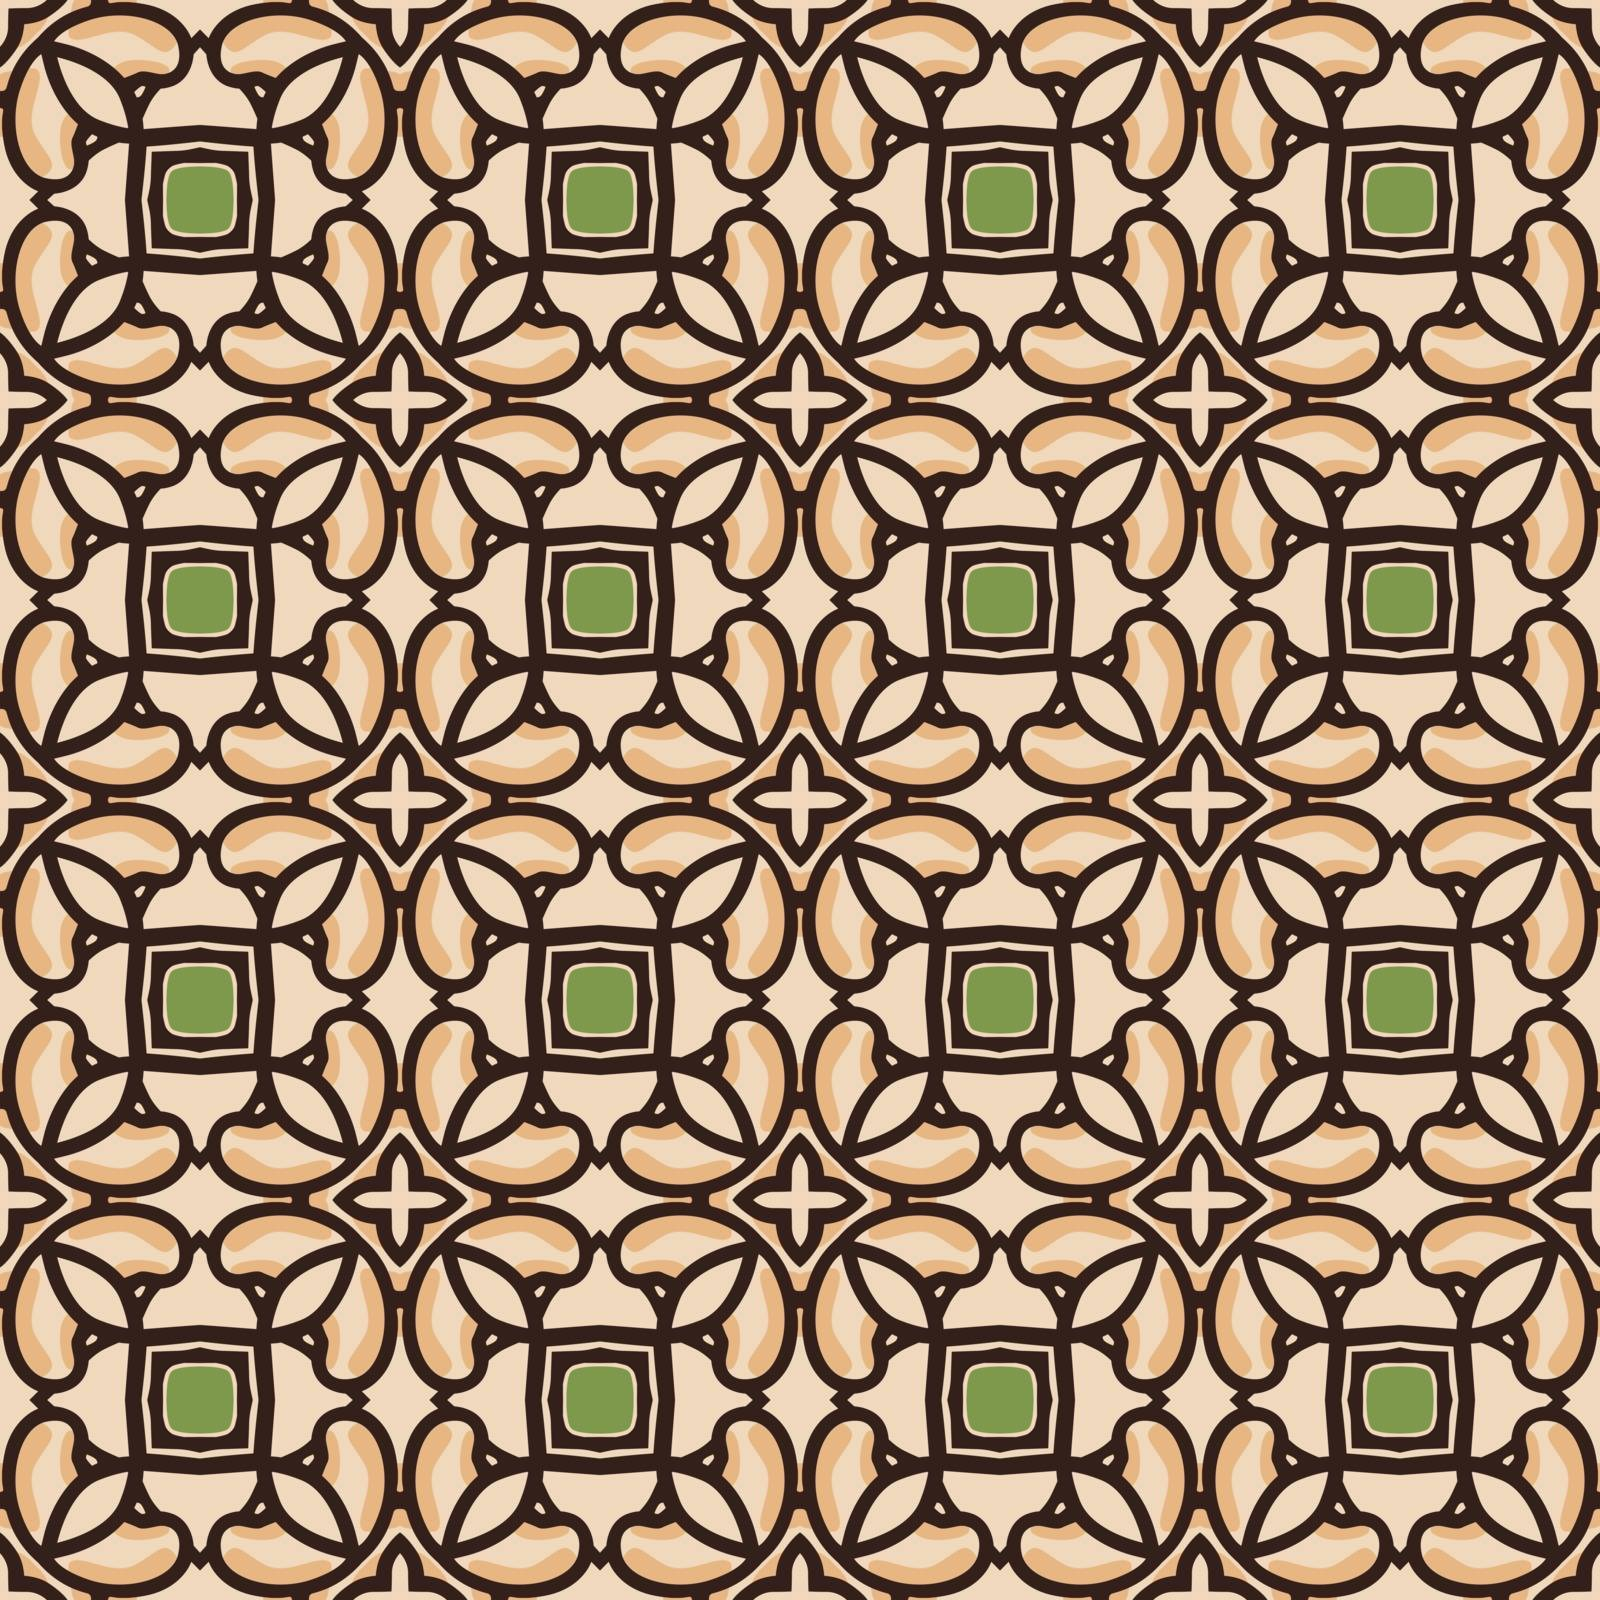 Seamless illustrated pattern made of abstract elements in beige, orange, green and black